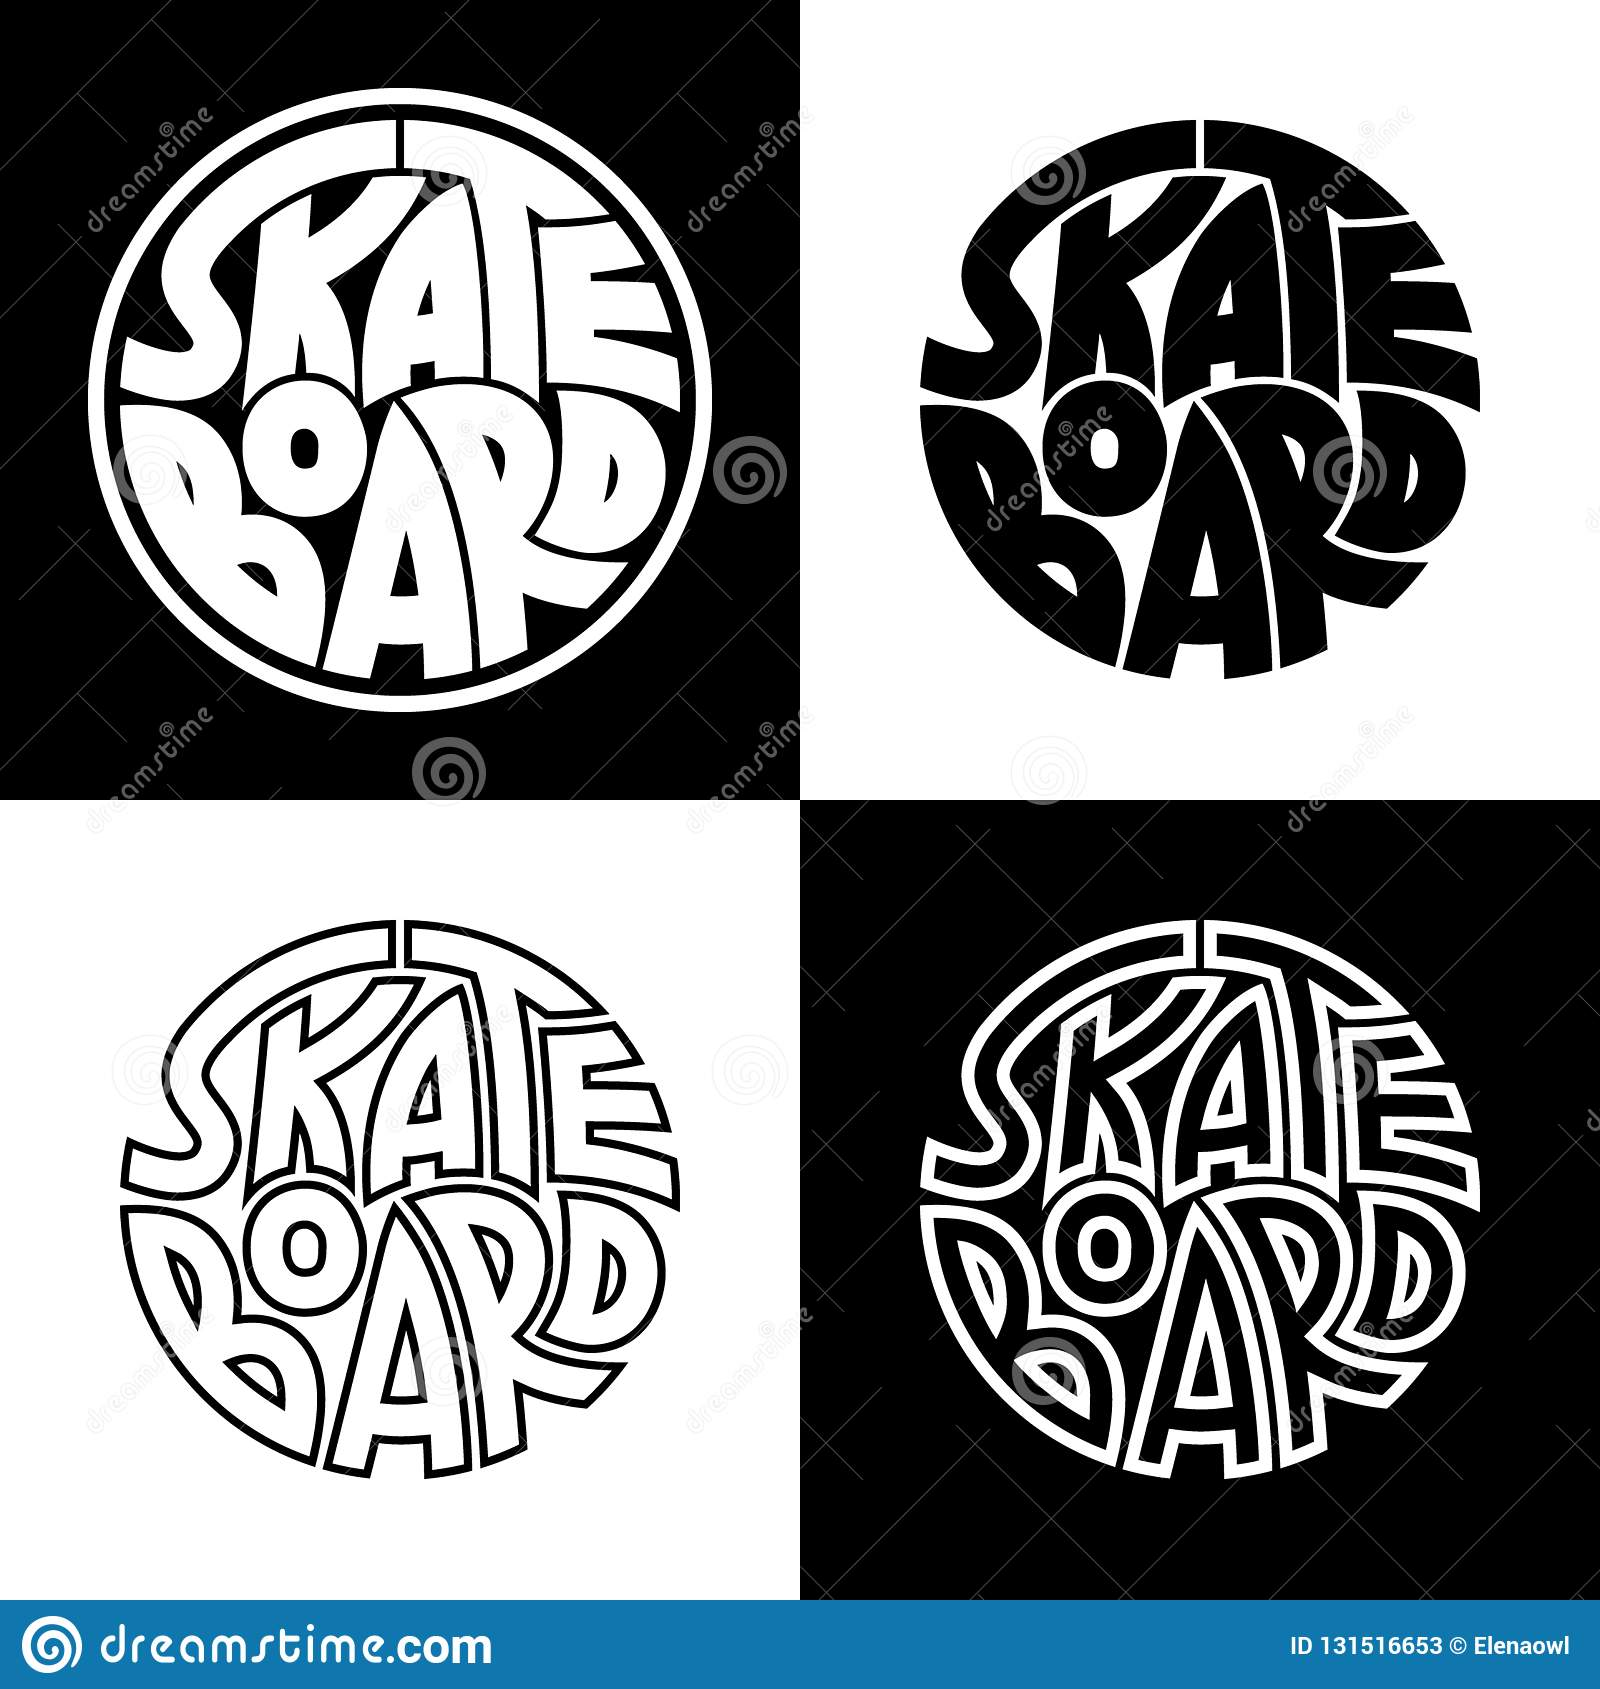 Set Of 4 Skateboard Typography Graphics Concept For Print Production T Shirt Fashion Design Template For Poster Print Banner Stock Vector Illustration Of Graphic Design 131516653